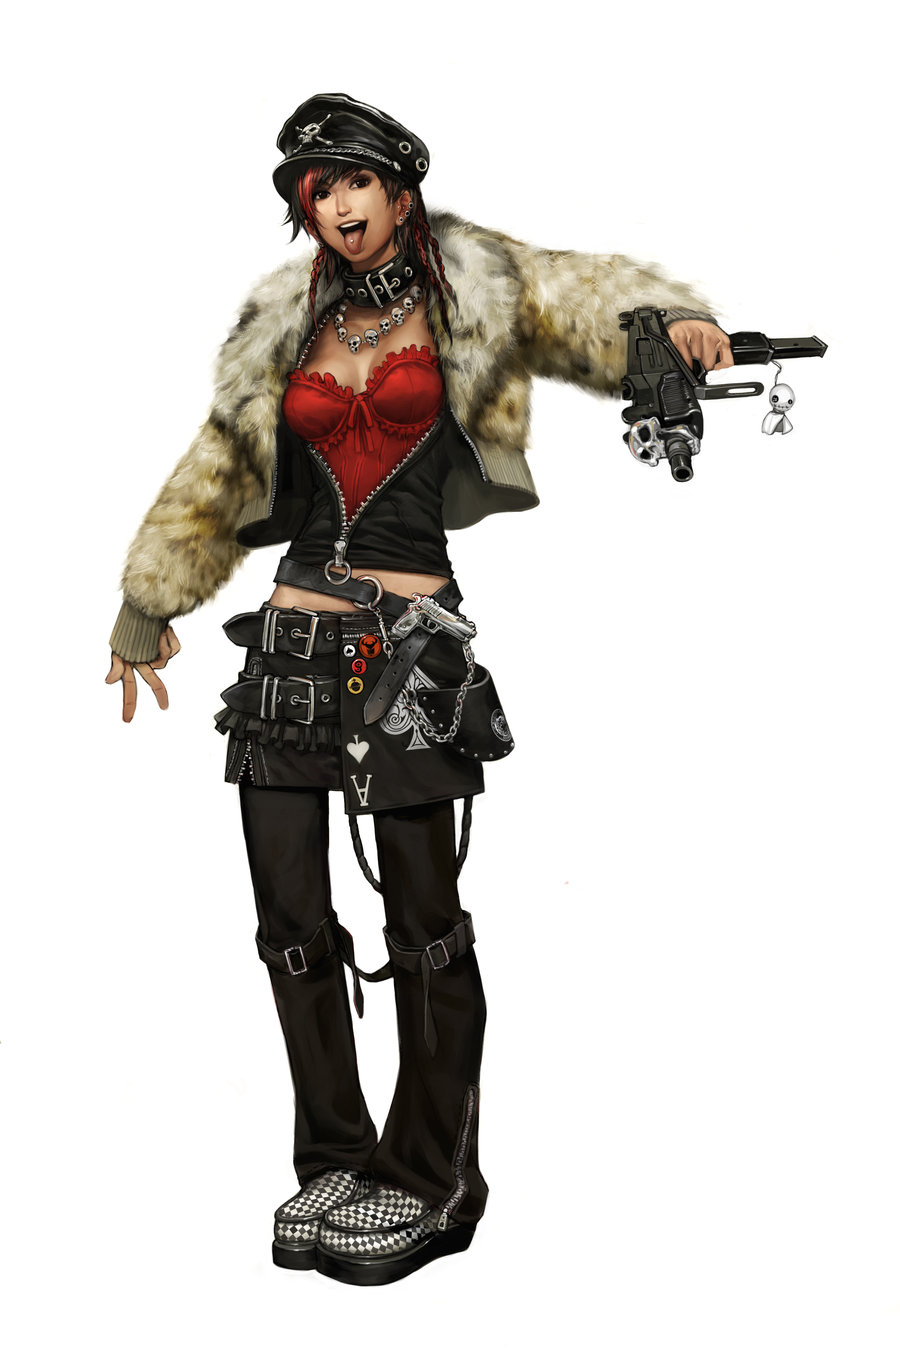 All Points Bulletin Concept Art by Arnold Tsang